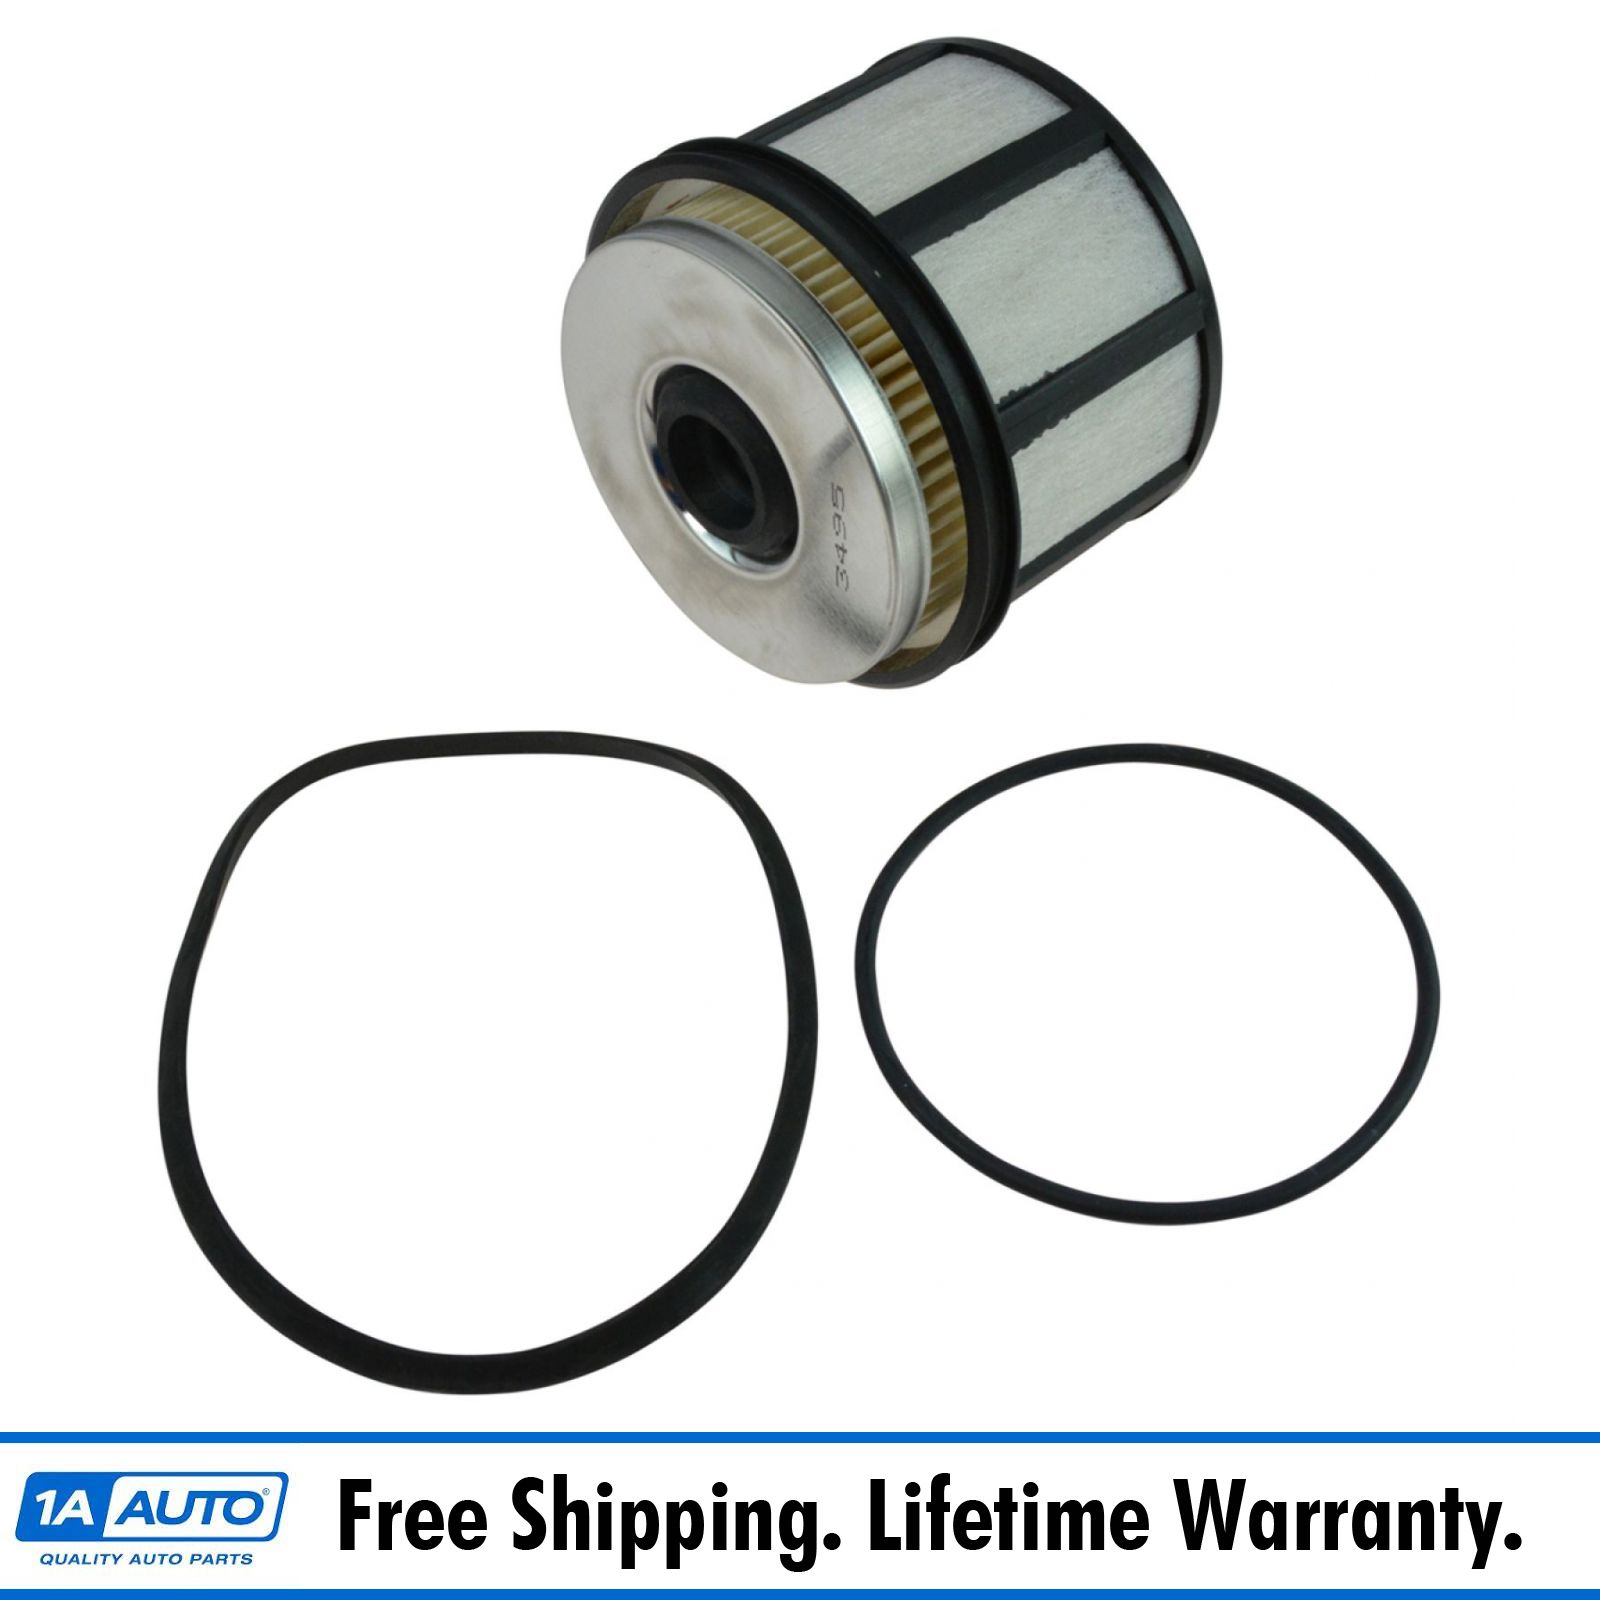 Details about Motorcraft FD4596 Fuel Filter for 98-03 Ford Super Duty on